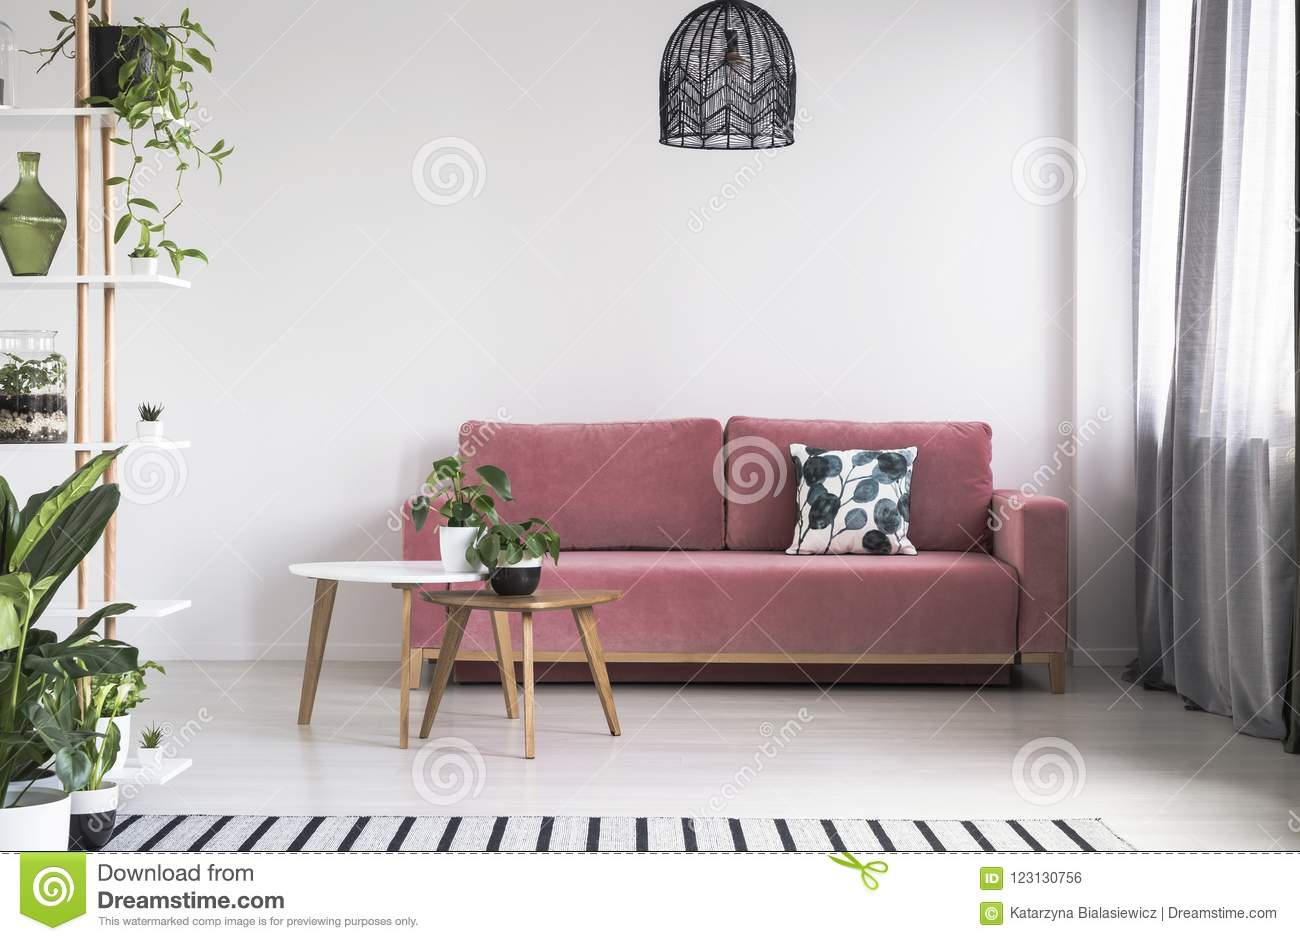 Wohnzimmer Industrial Petrol Bright Room Stock Images Download 149 013 Royalty Free Photos